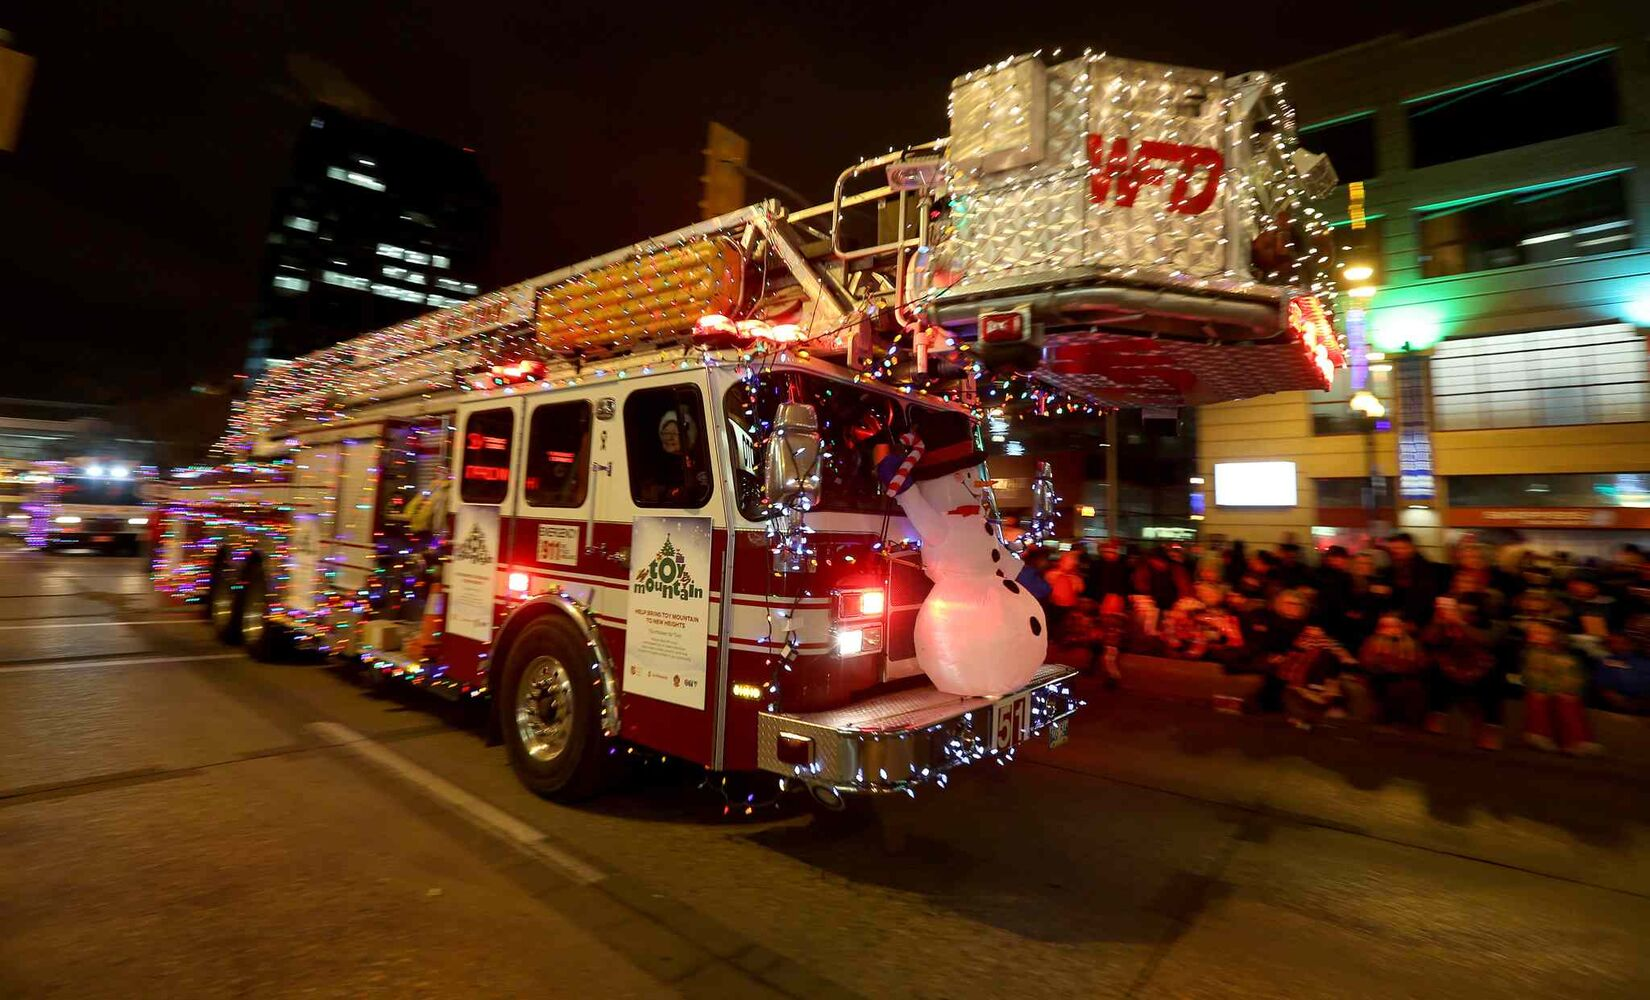 A fire truck decked out in lights and decorations makes its way down Portage Avenue. (TREVOR HAGAN / WINNIPEG FREE PRESS)